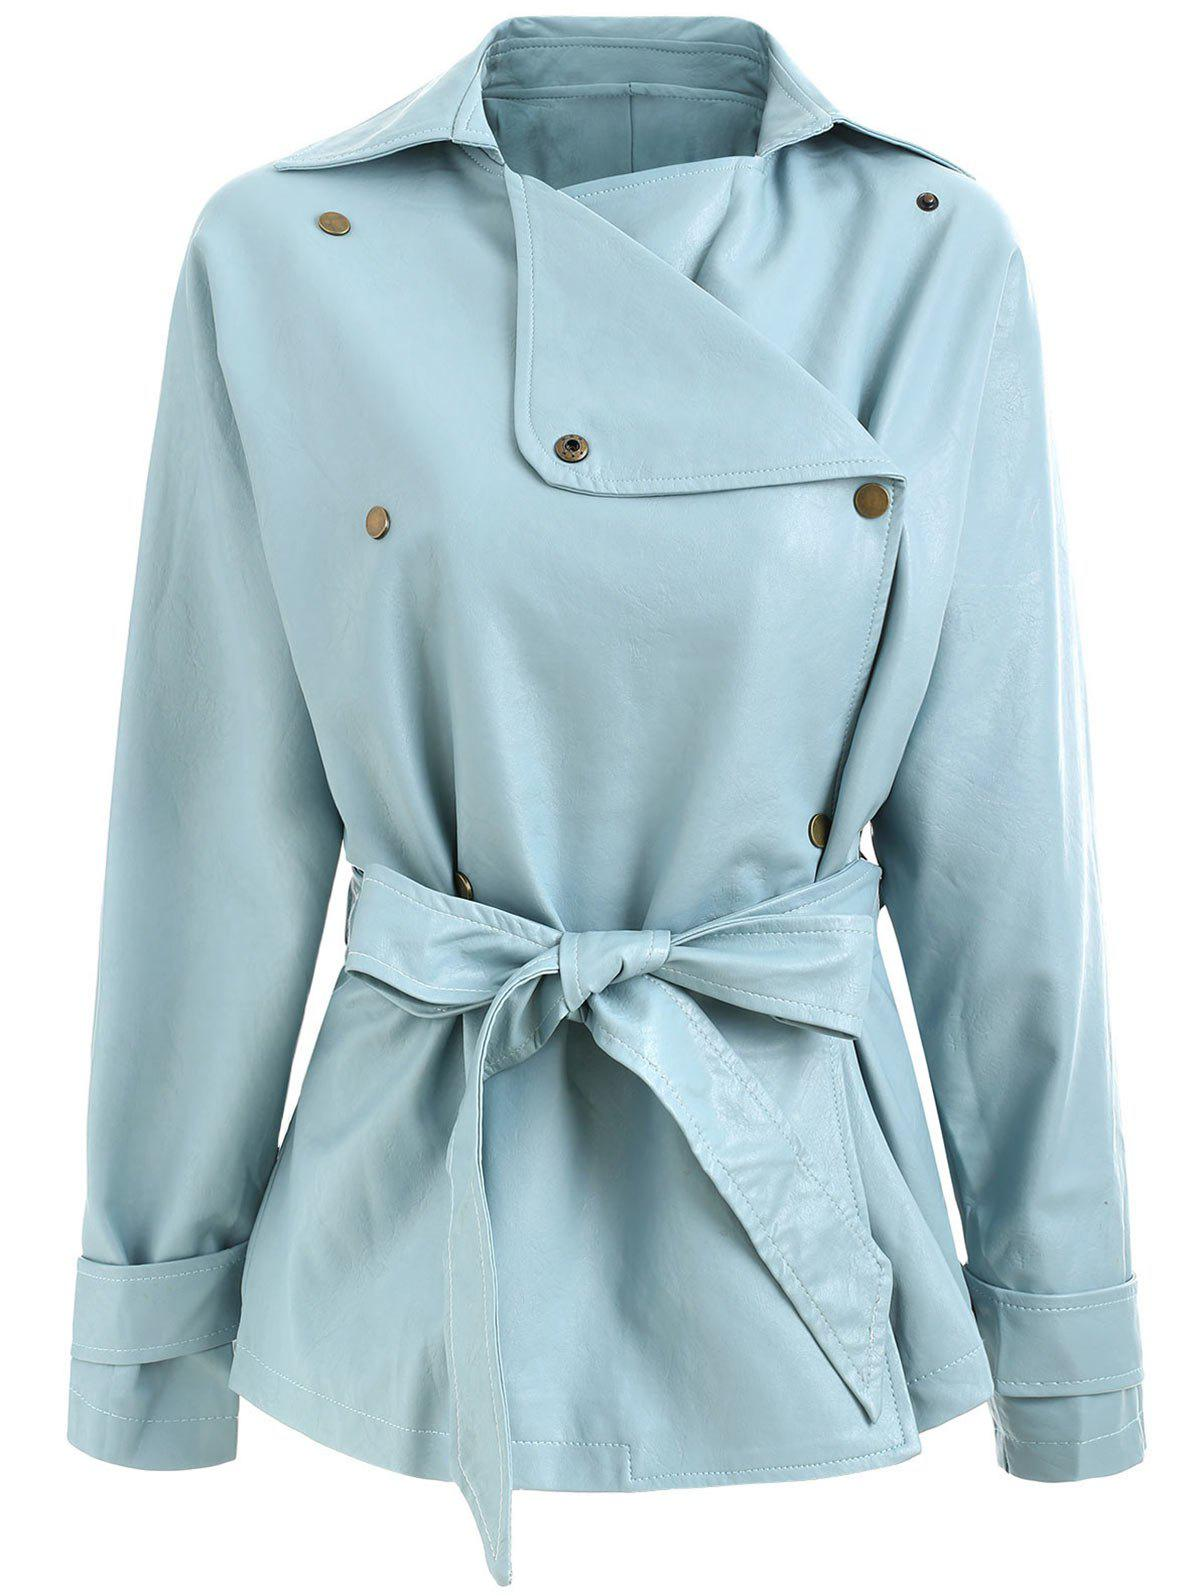 Discount Faux Leather Belted Turndown Collar Jacket